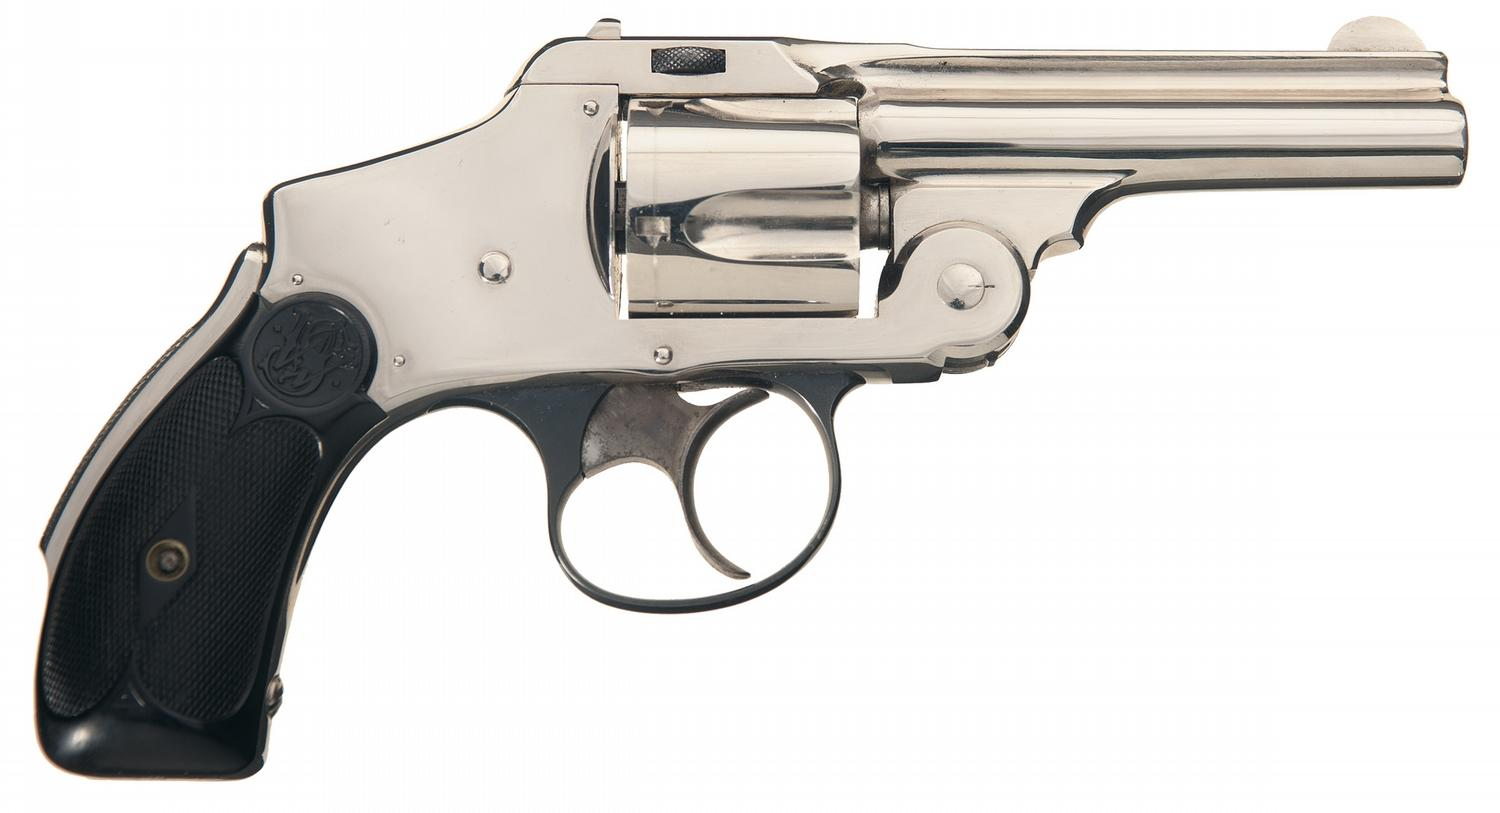 Smith and wesson serial numbers